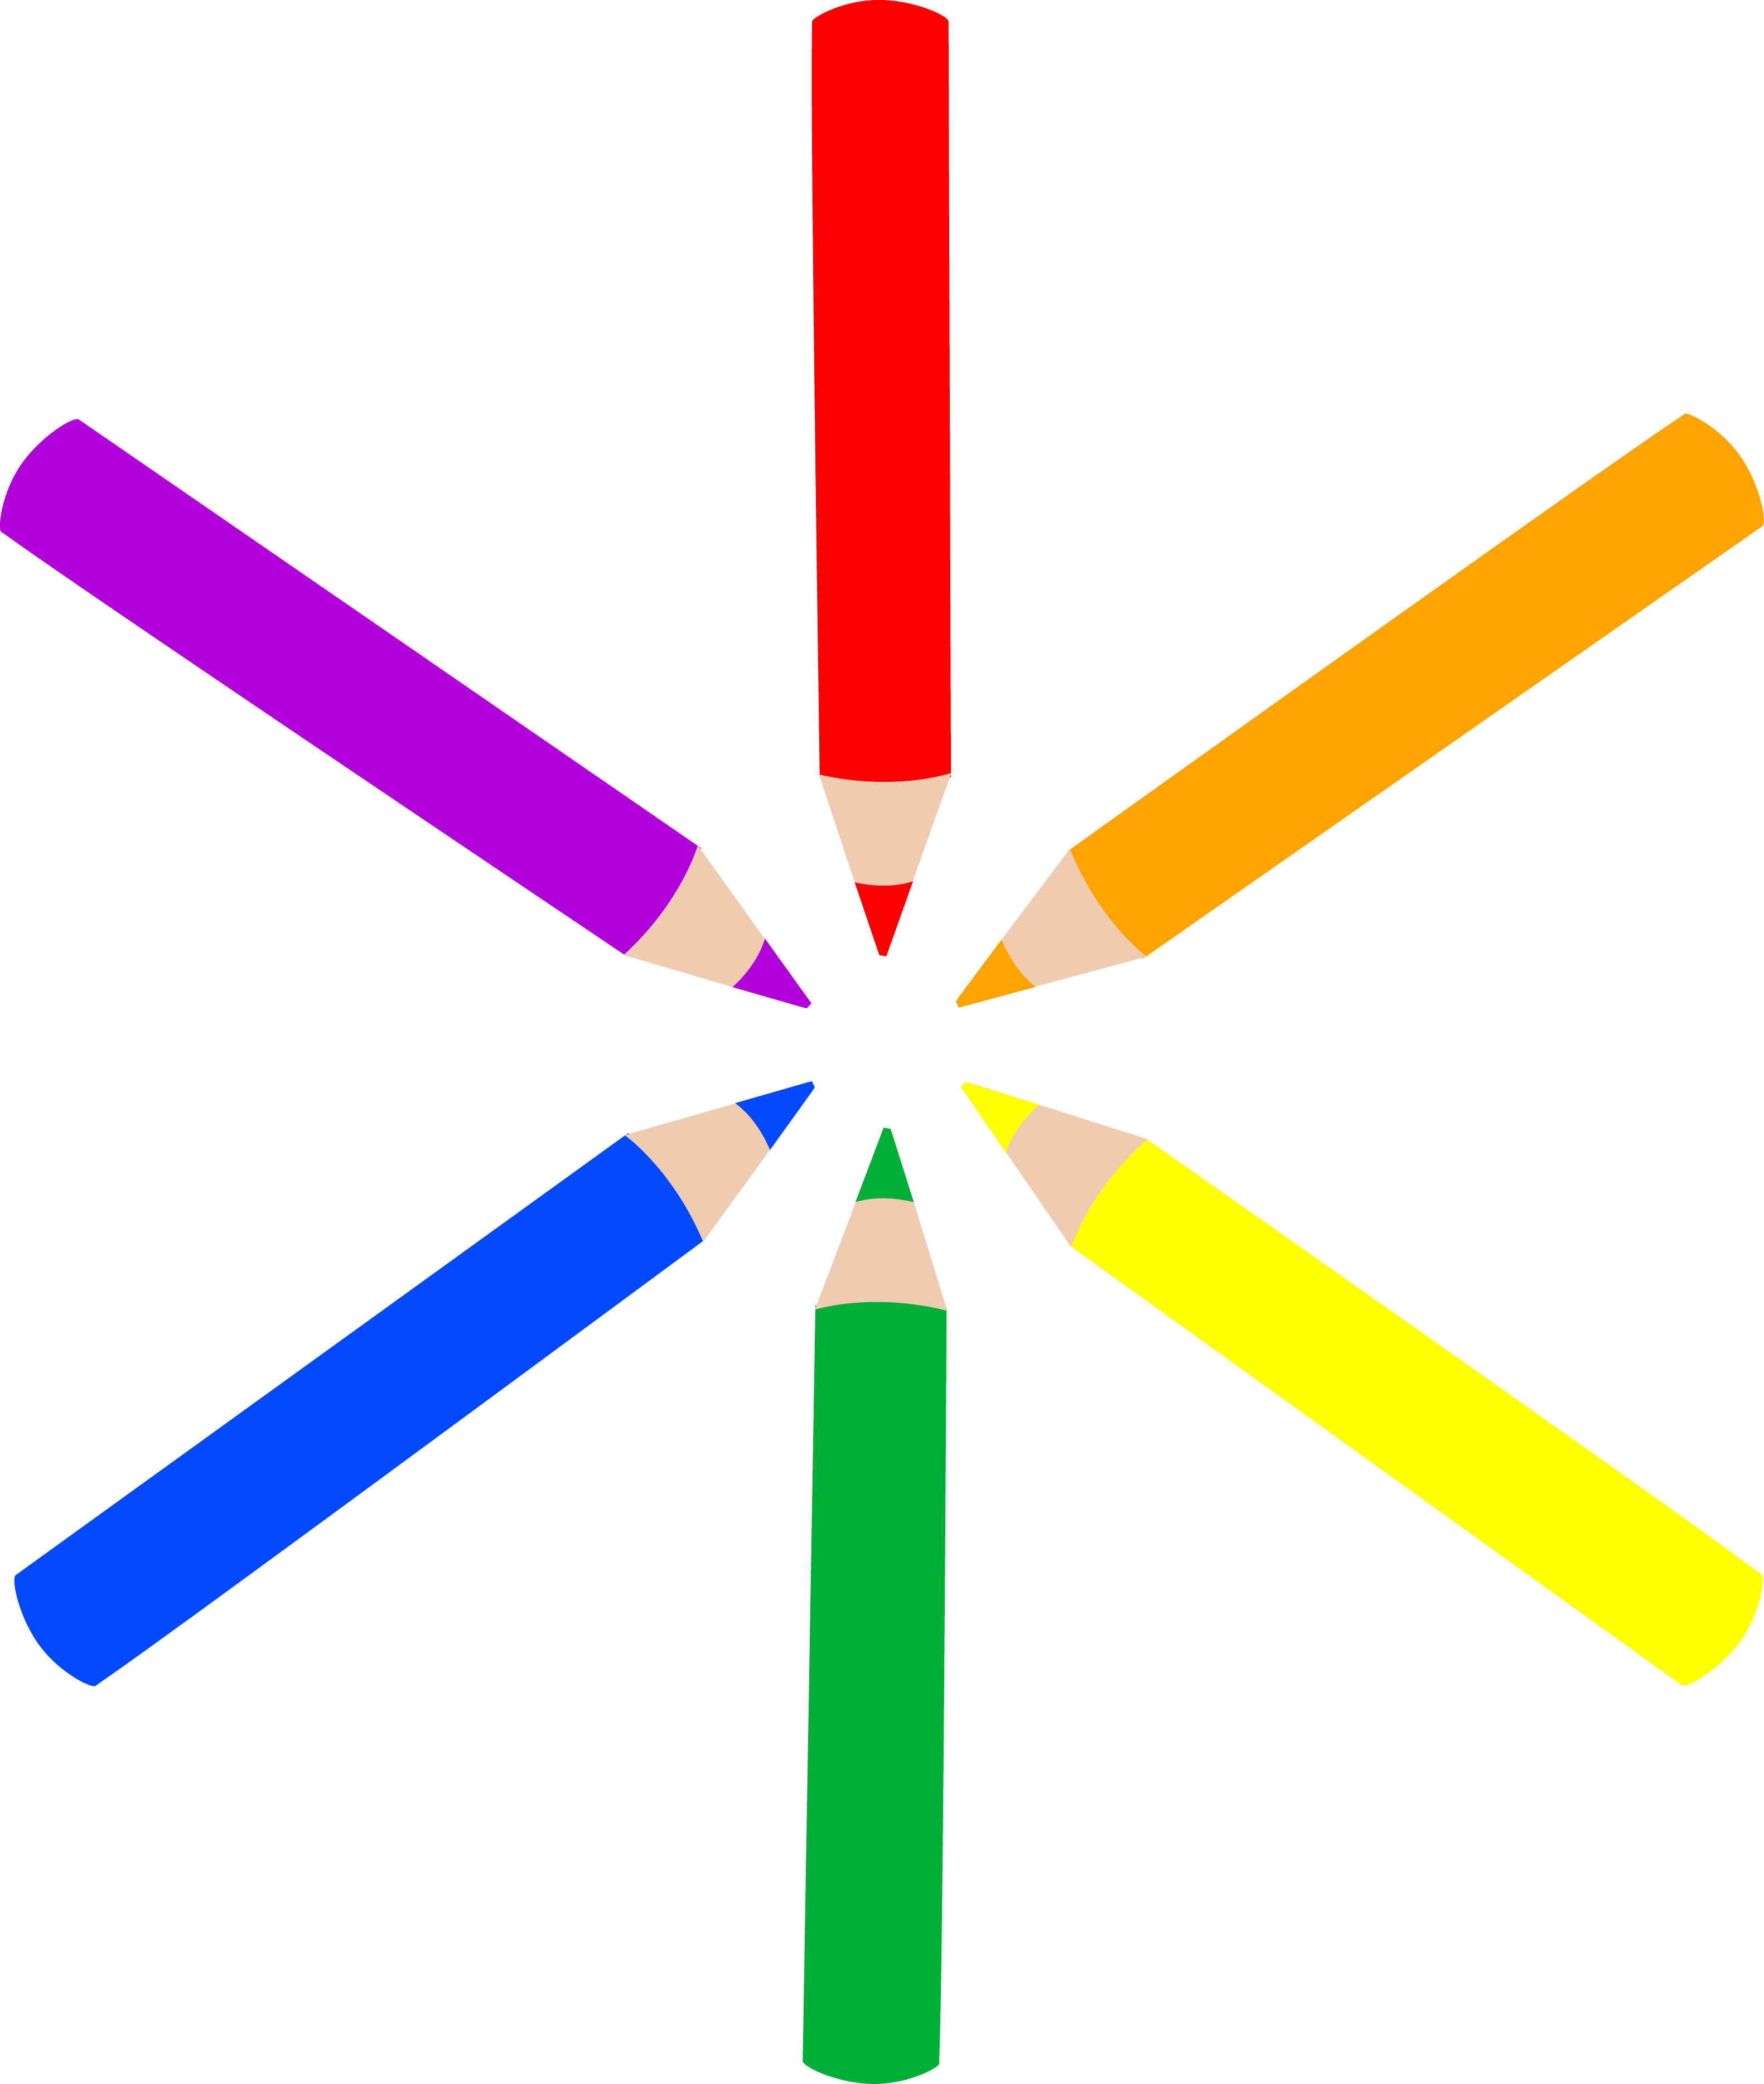 Clipart Of Colored Pencils.